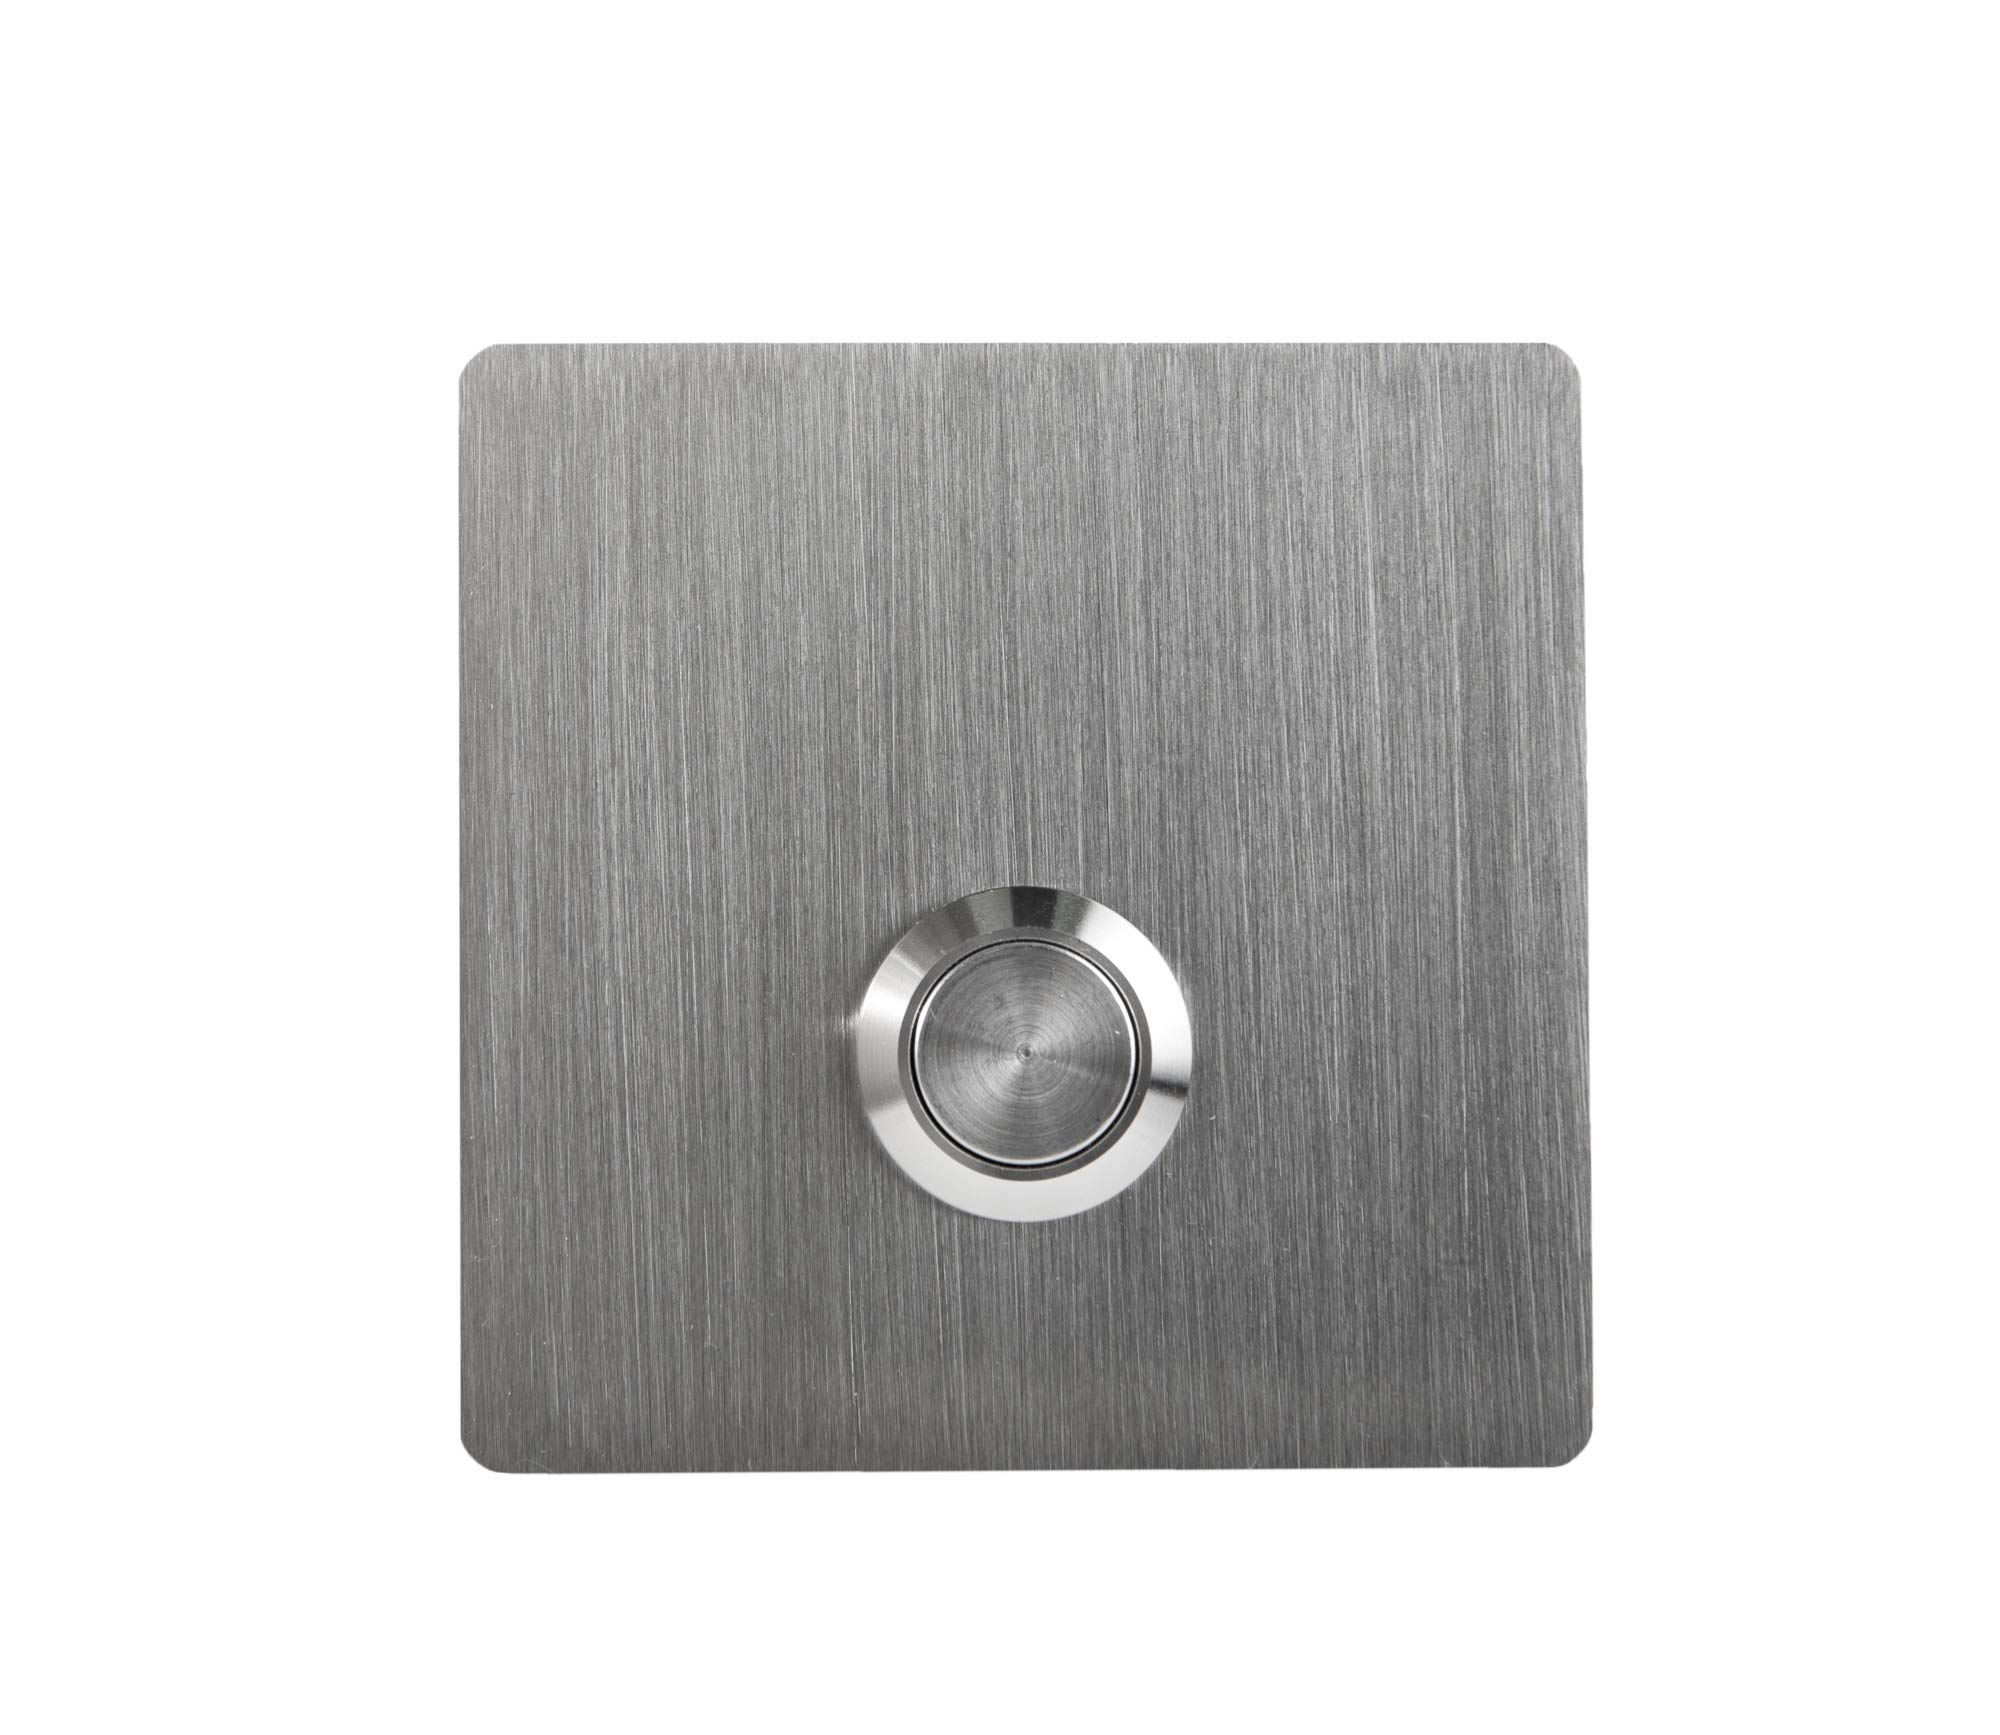 Modern Stainless Hardware Model S2 Stainless Steel Doorbell Button in grade 304 Stainless Steel 4mm thick